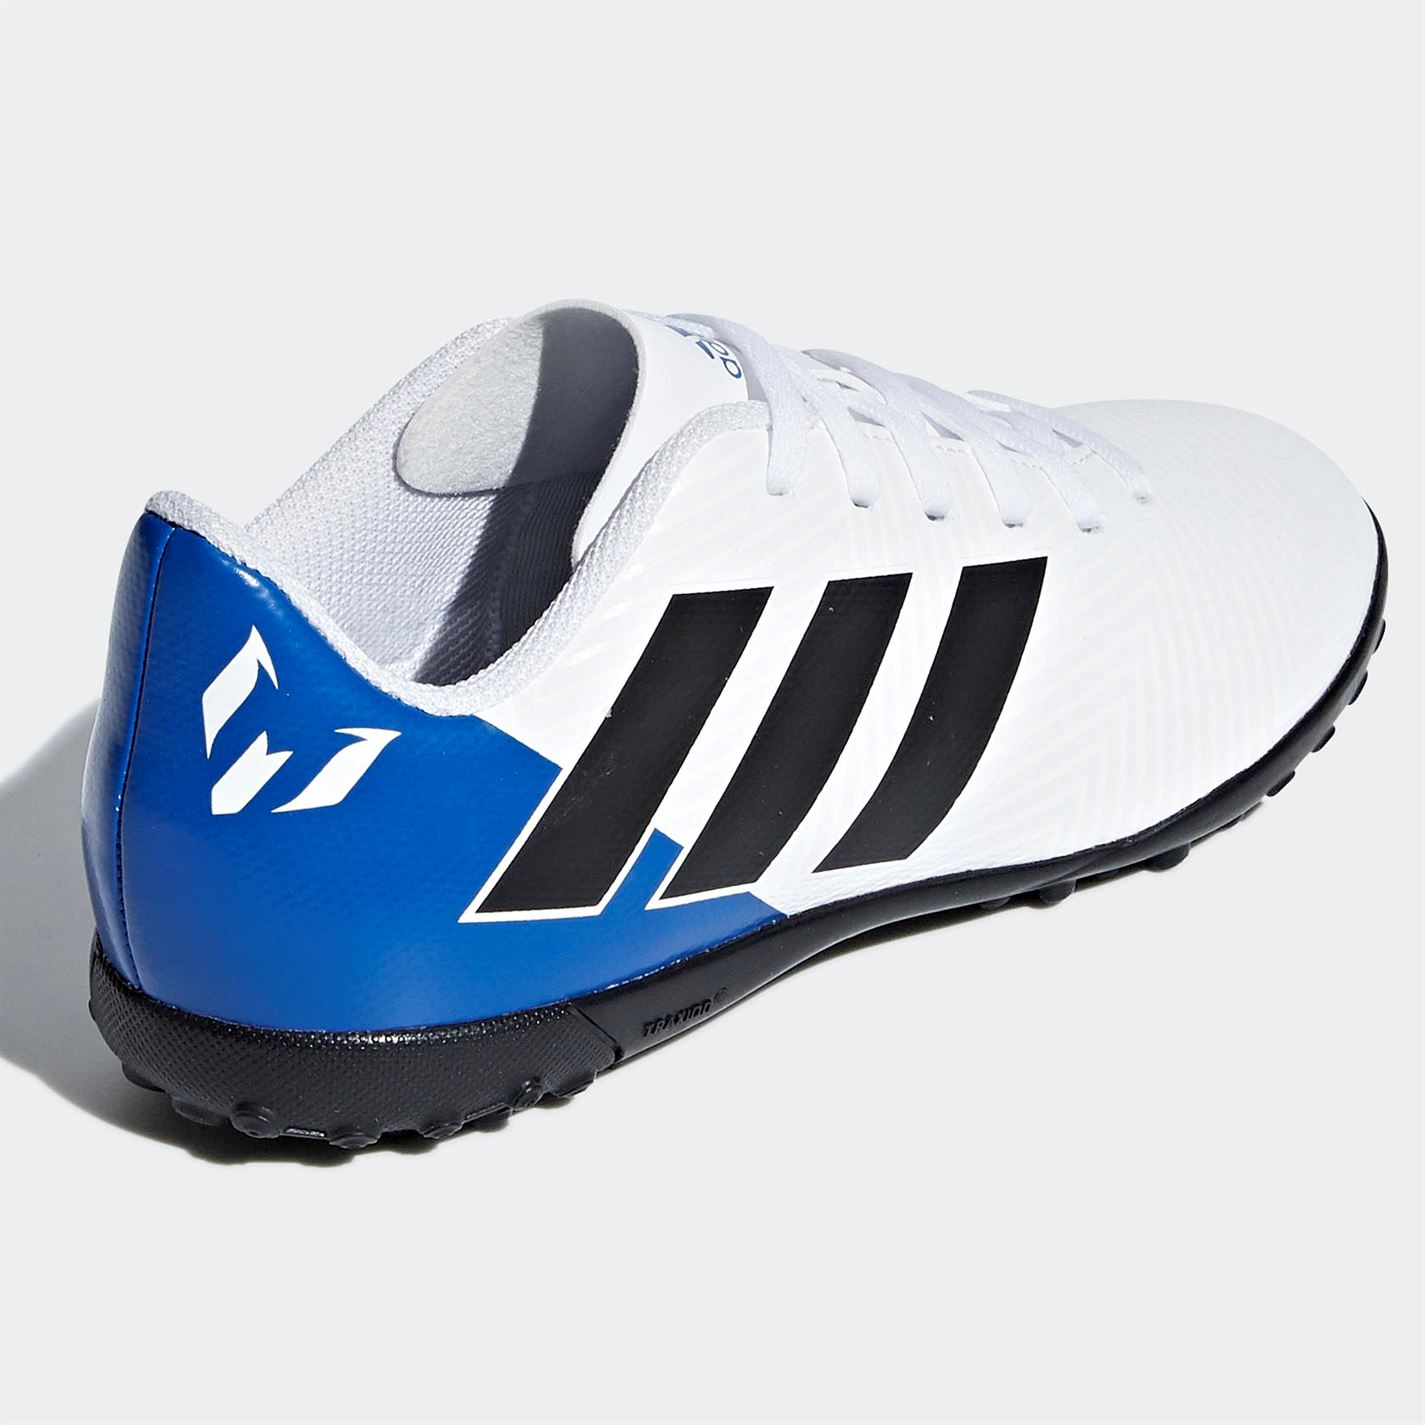 official photos 46510 aa8d6 adidas-Nemeziz-Messi-Tango-18-4-Childrens-Astro-